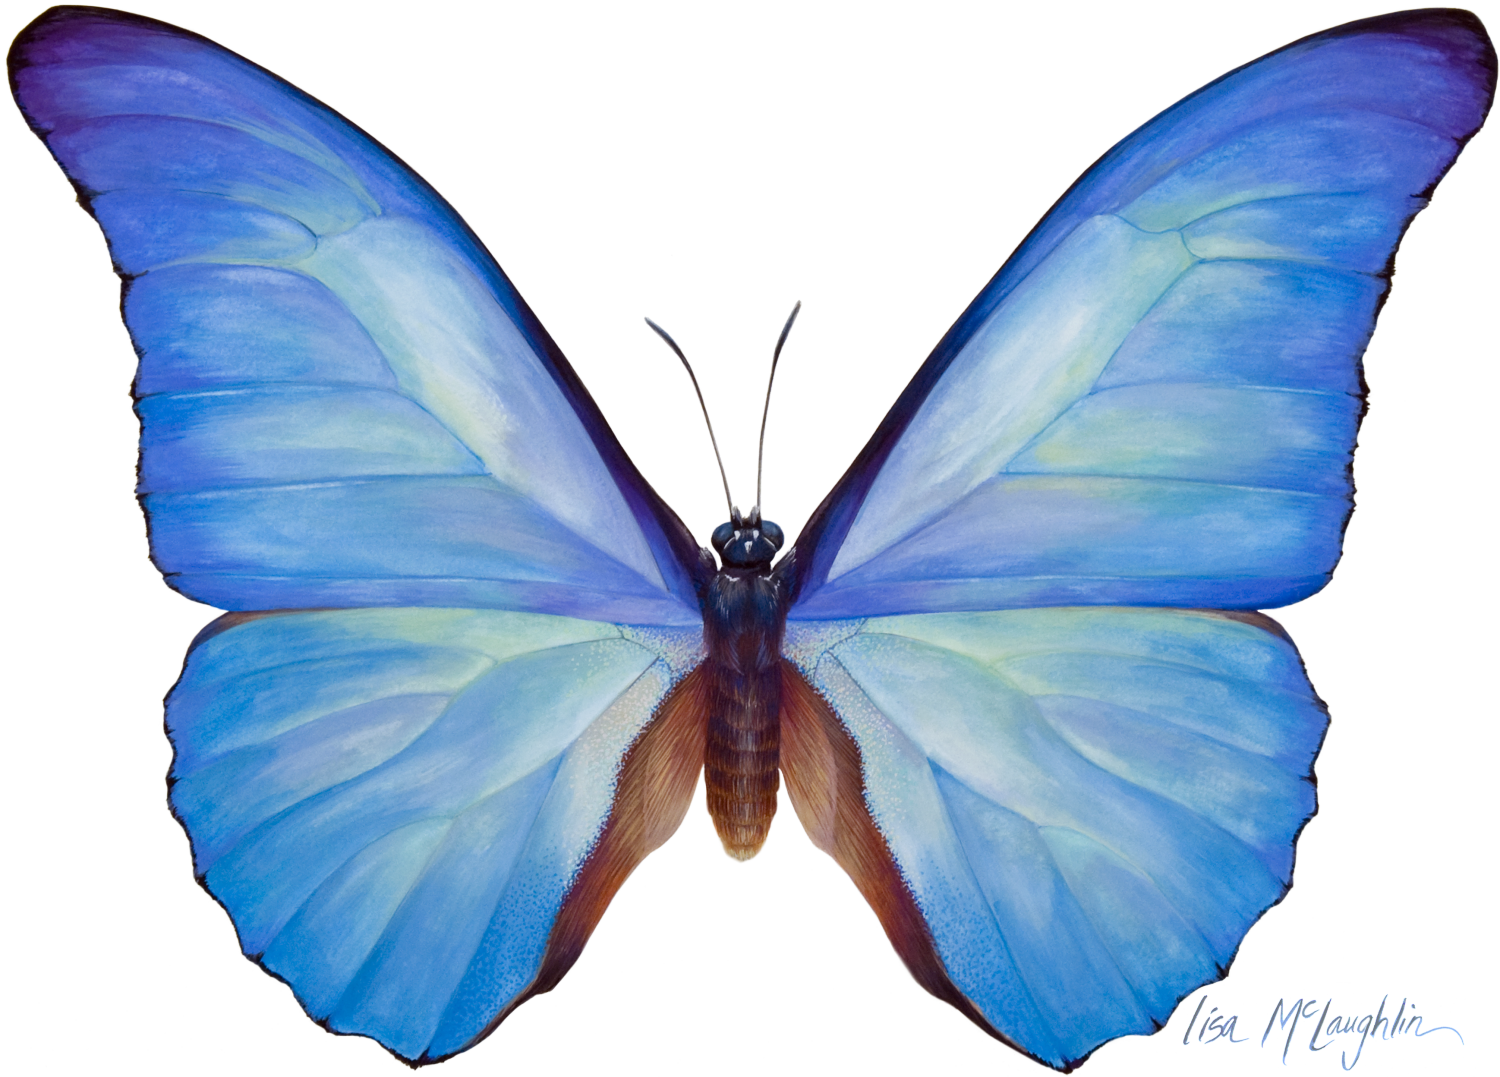 Lisa Mclaughlin S Detailed Wildlife Watercolors Exhibit Blue Butterfly Wallpaper Butterfly Watercolor Butterfly Images